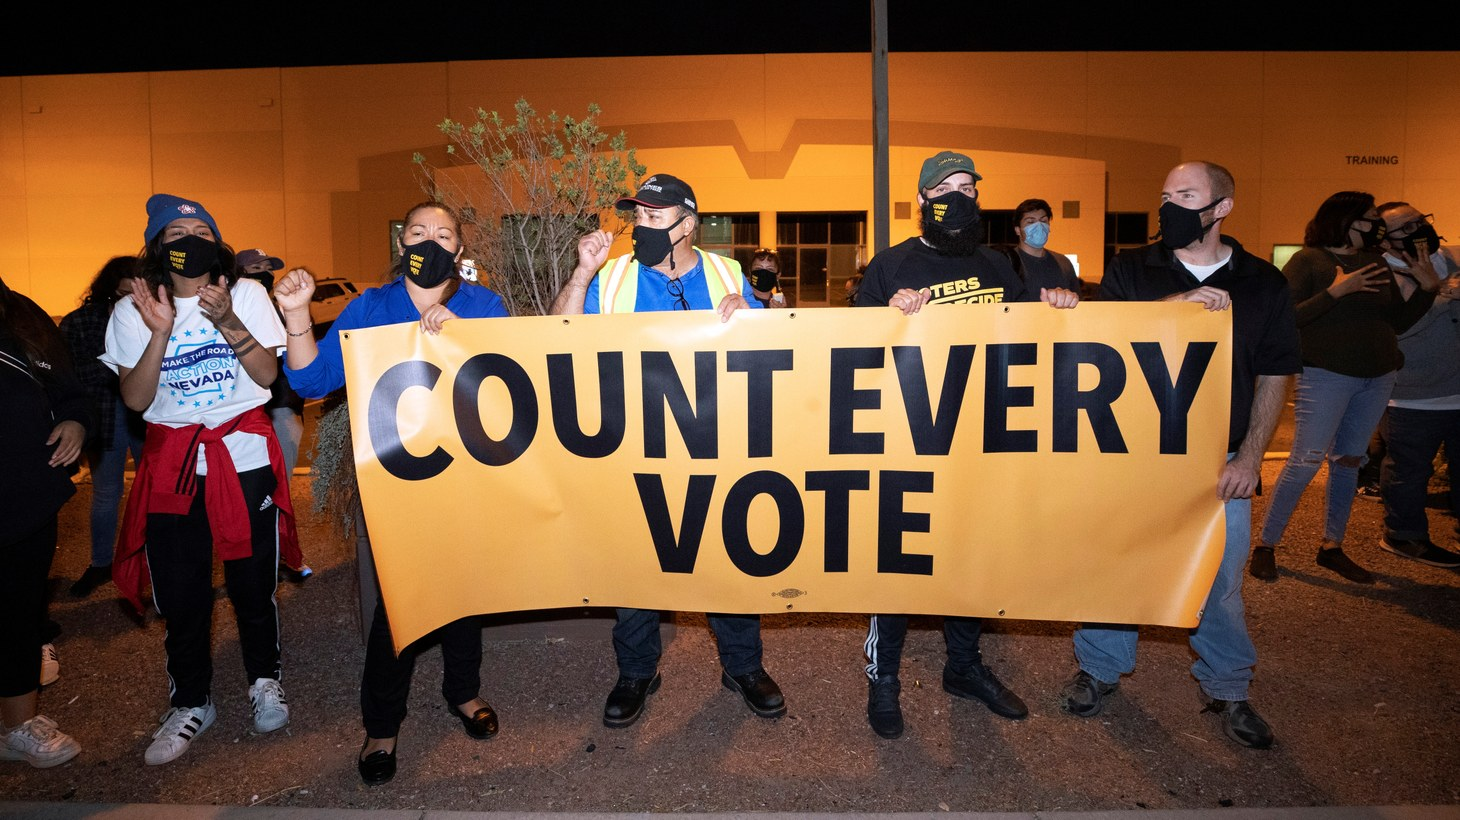 """Counter-protesters, organized by Make the Road Action Nevada and PLAN Action, hold a banner saying """"count every vote"""" during a """"Stop the Steal"""" protest by supporters of U.S. President Donald Trump at the Clark County Election Center in North Las Vegas, Nevada, U.S. November 4, 2020."""